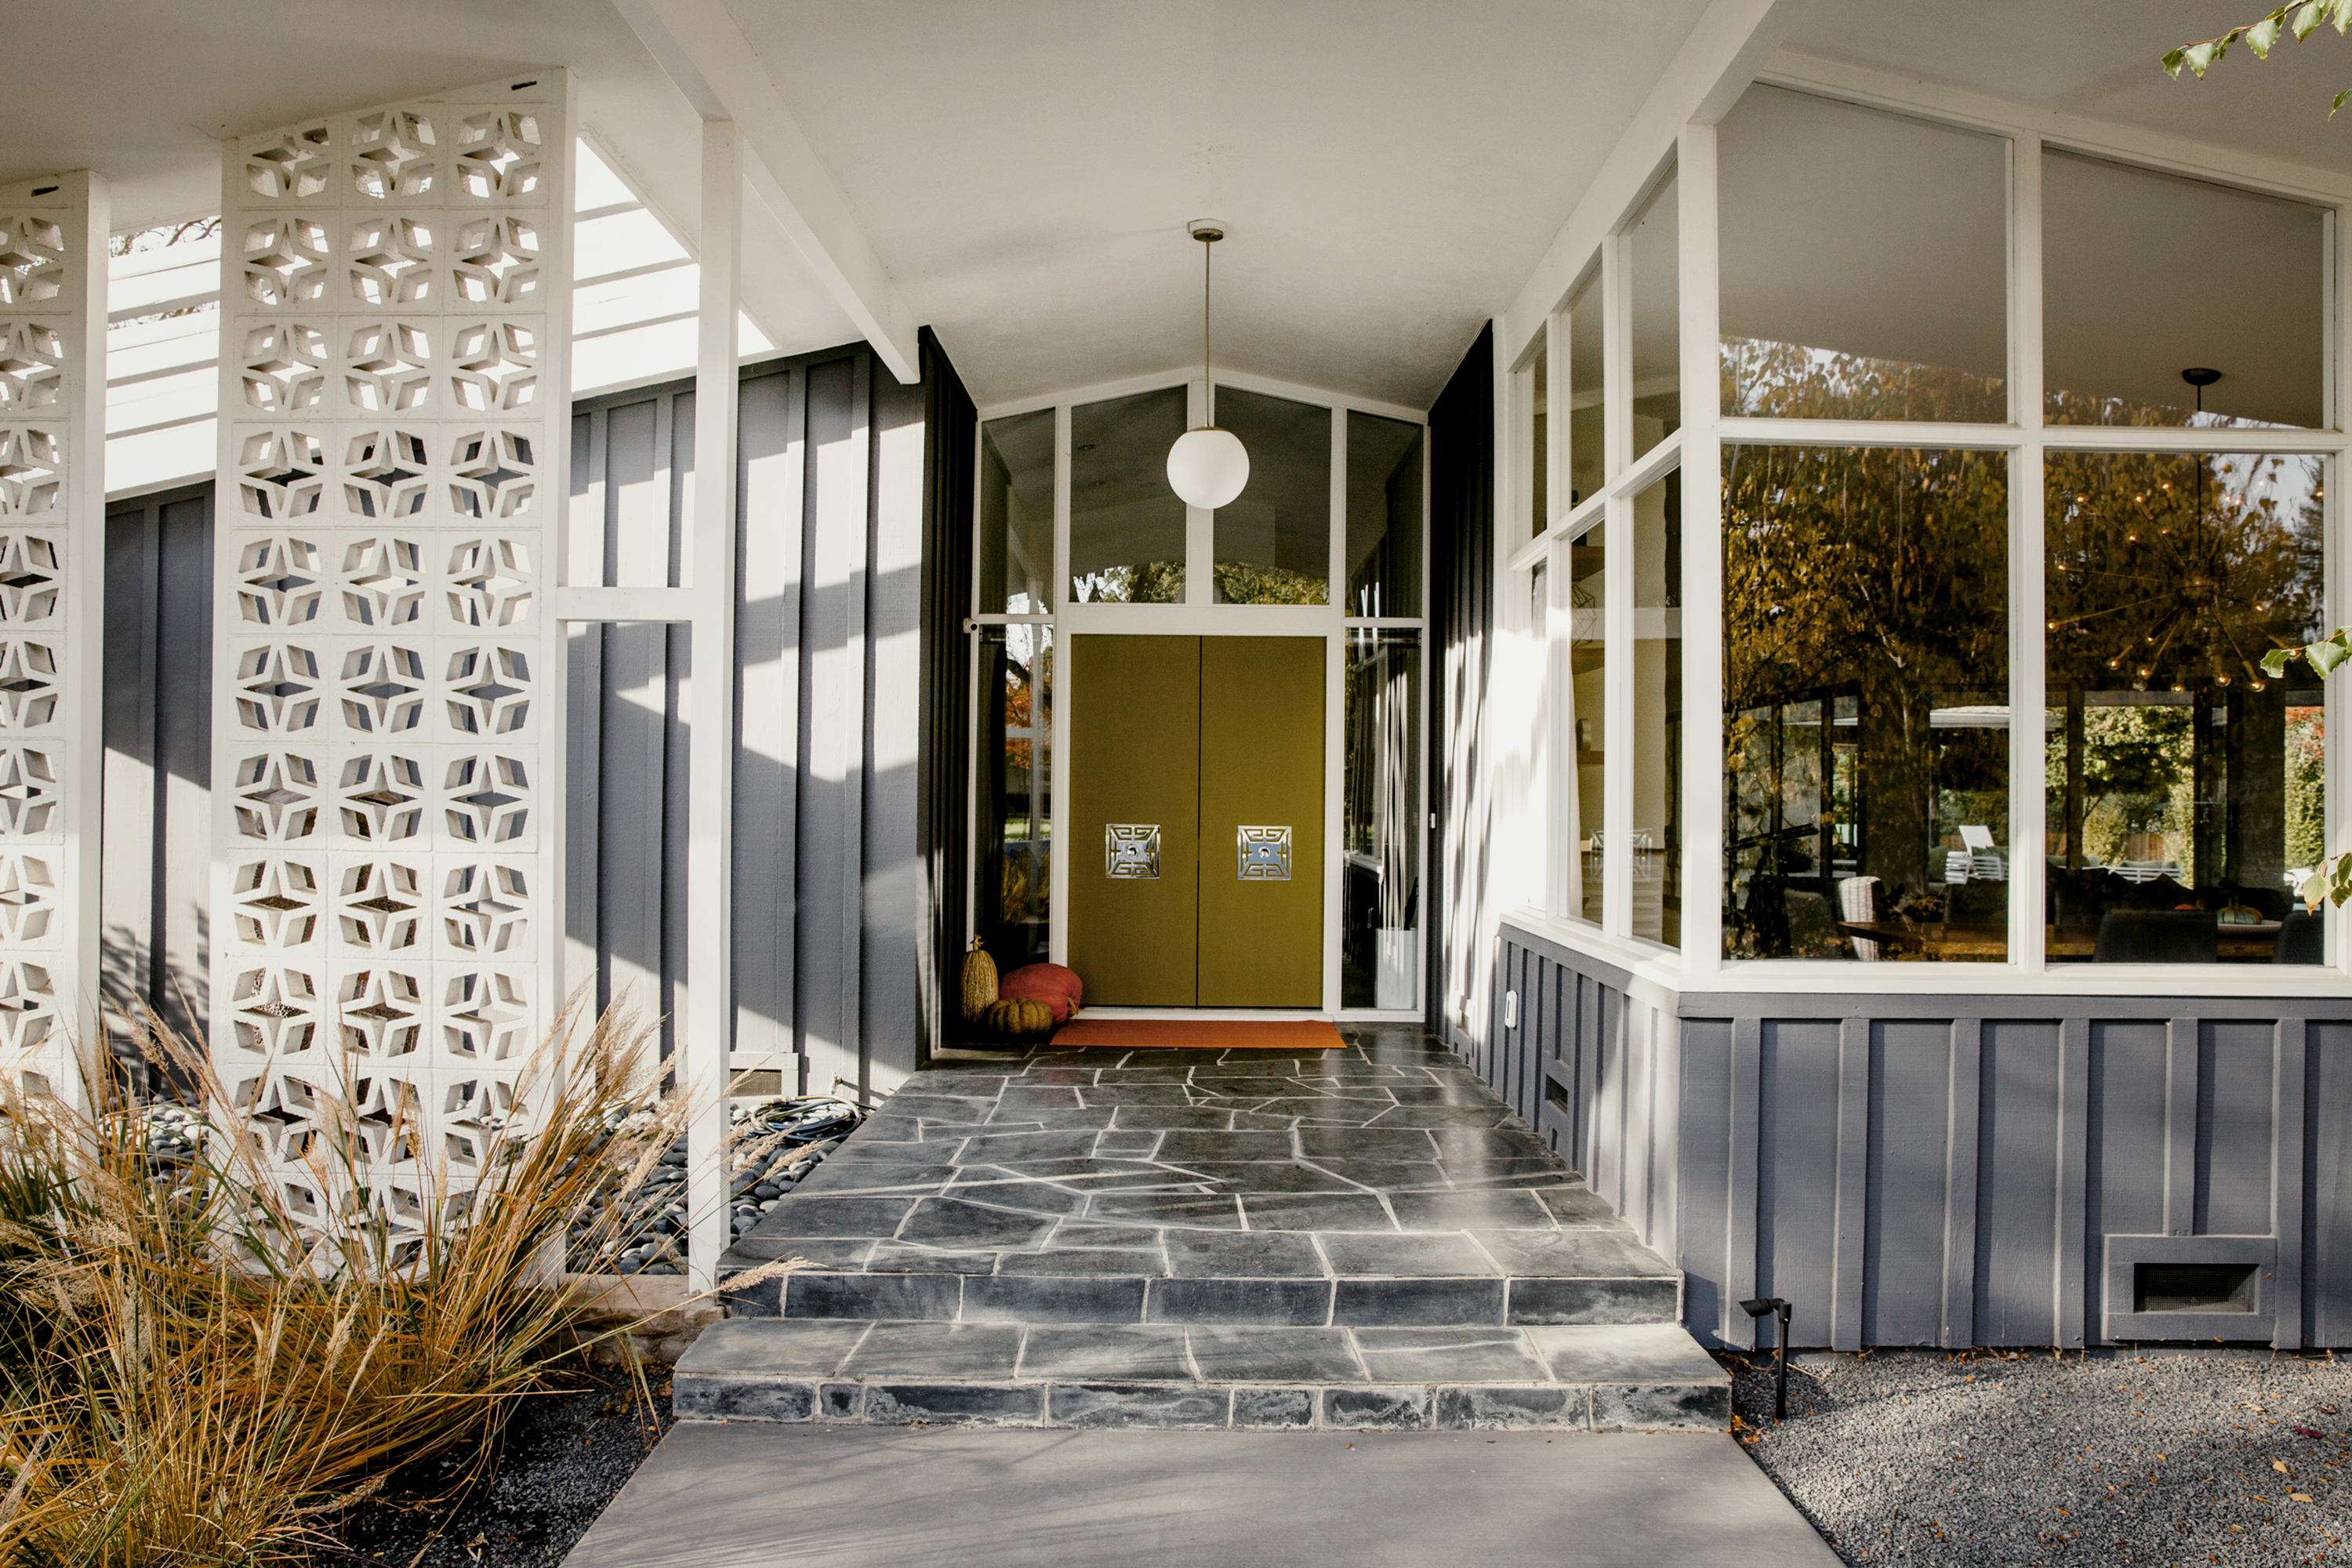 Classic Midcentury Modern Home Dazzles After Careful Remodel ...